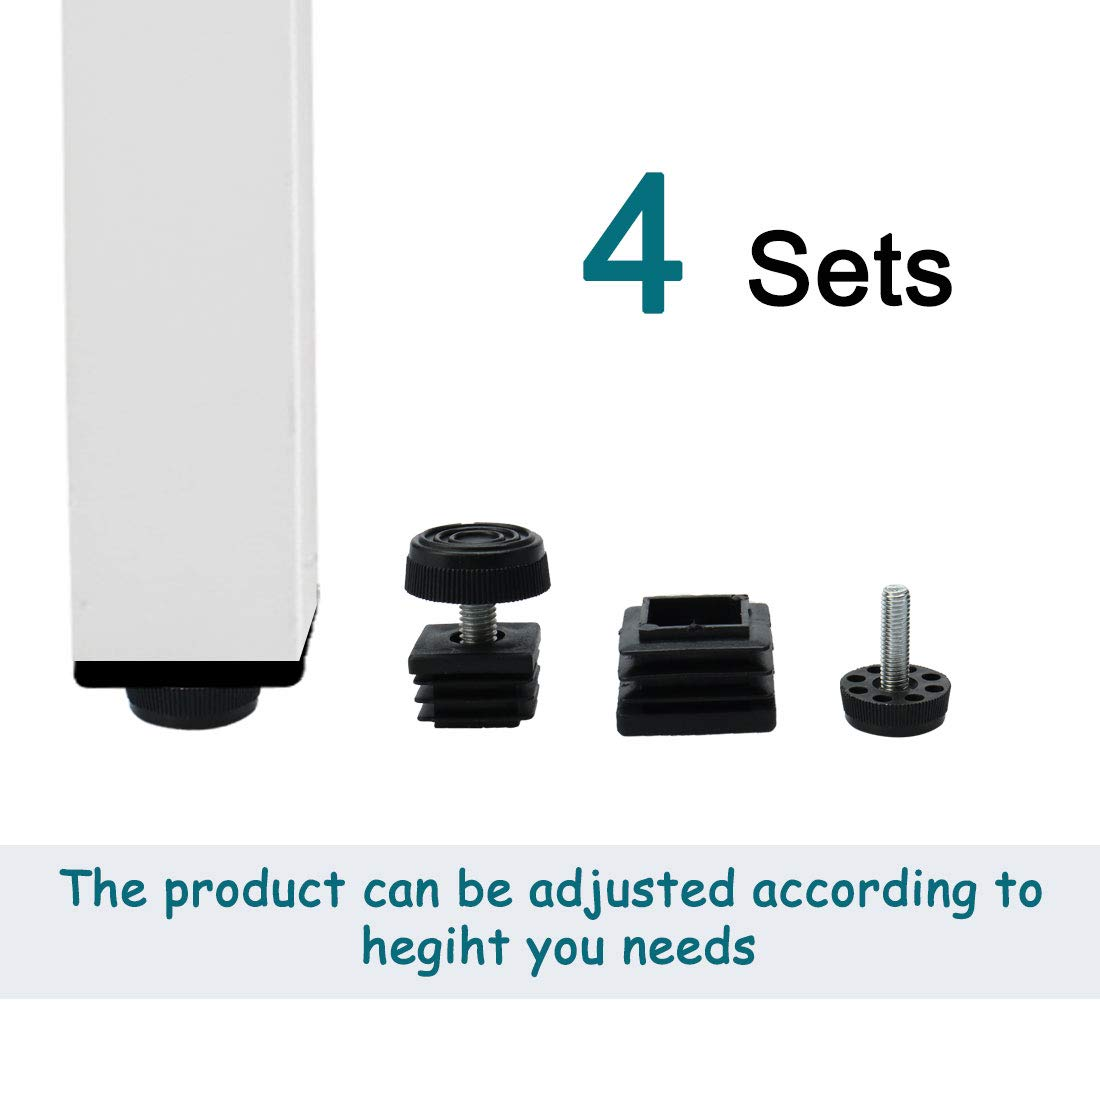 uxcell Leveling Feet 25 x 25mm Square Tube Inserts Kit Furniture Glide Adjustable Leveler for Table Sofa Leg 4 Sets